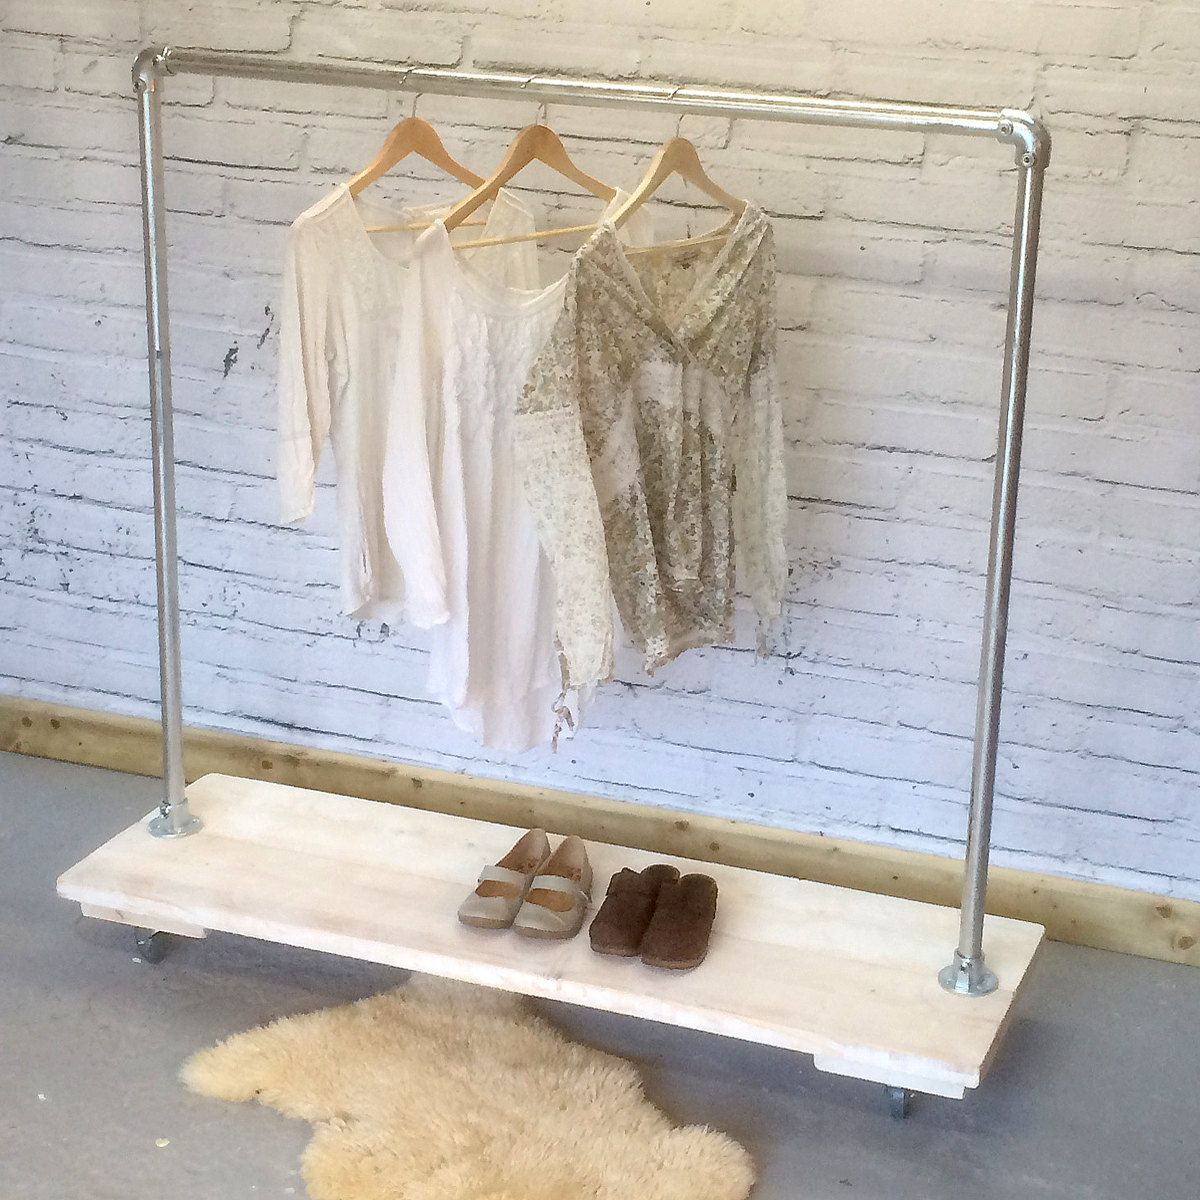 Industrial Style Clothing and Shoe Rack in Scaffold. Loft